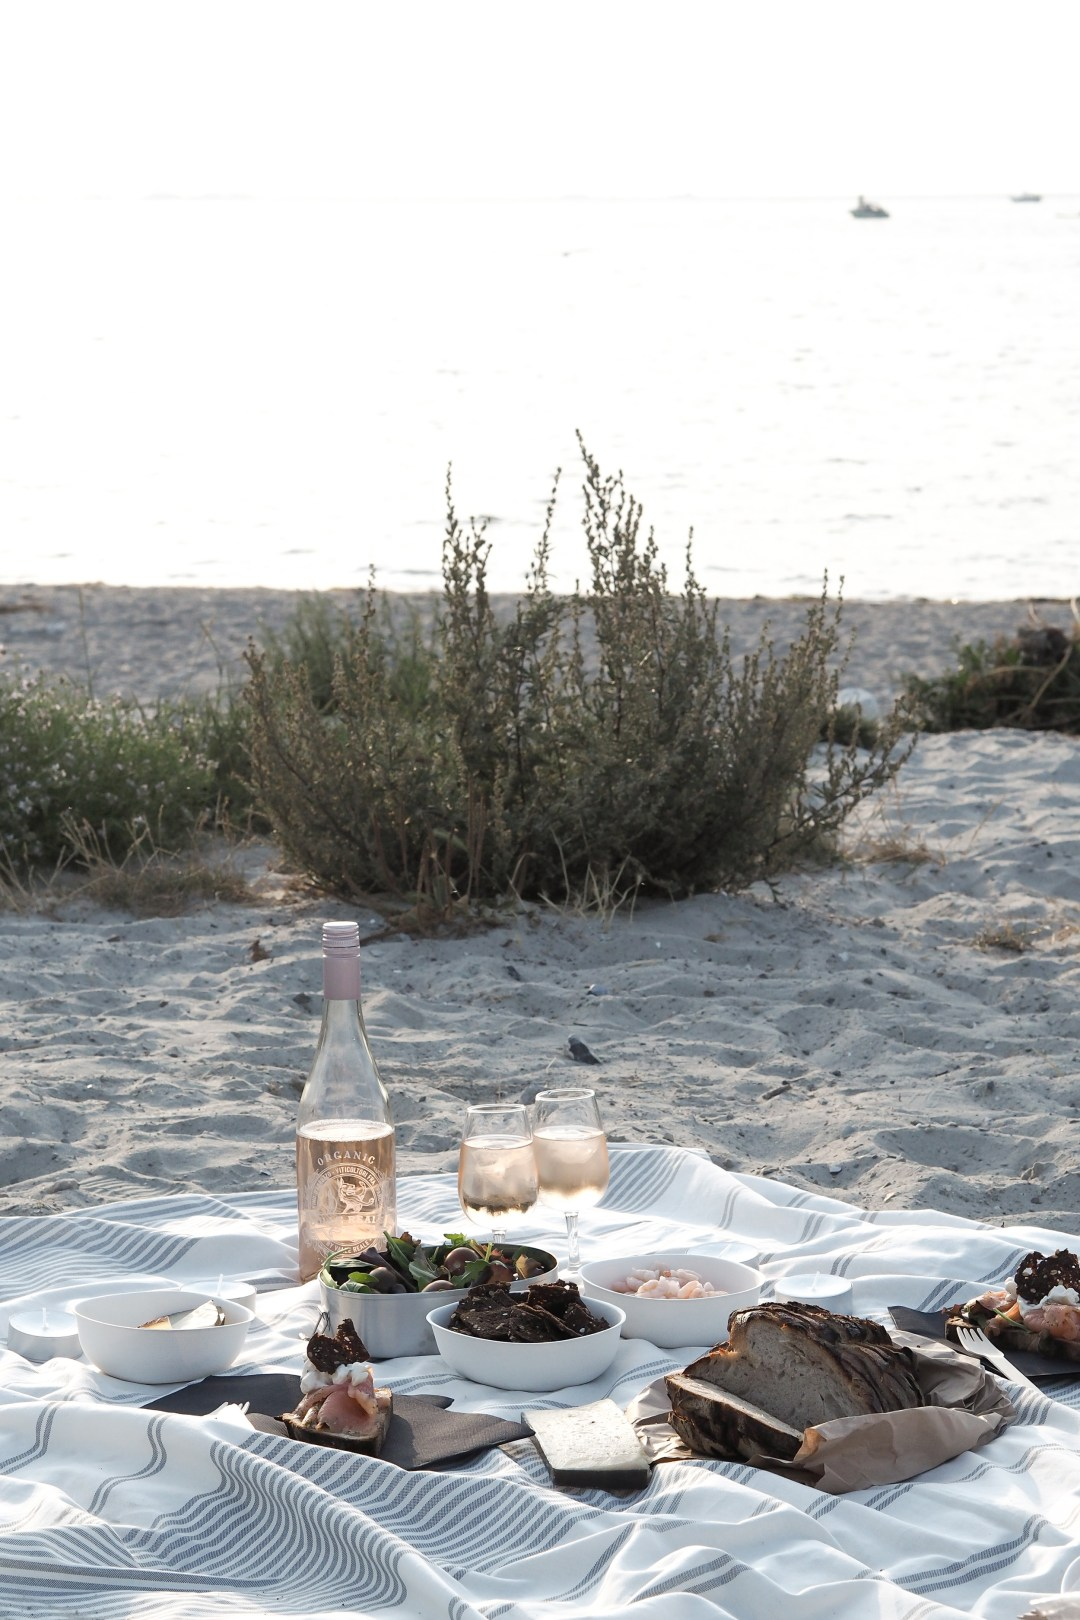 A picnic on the beach in Malmö